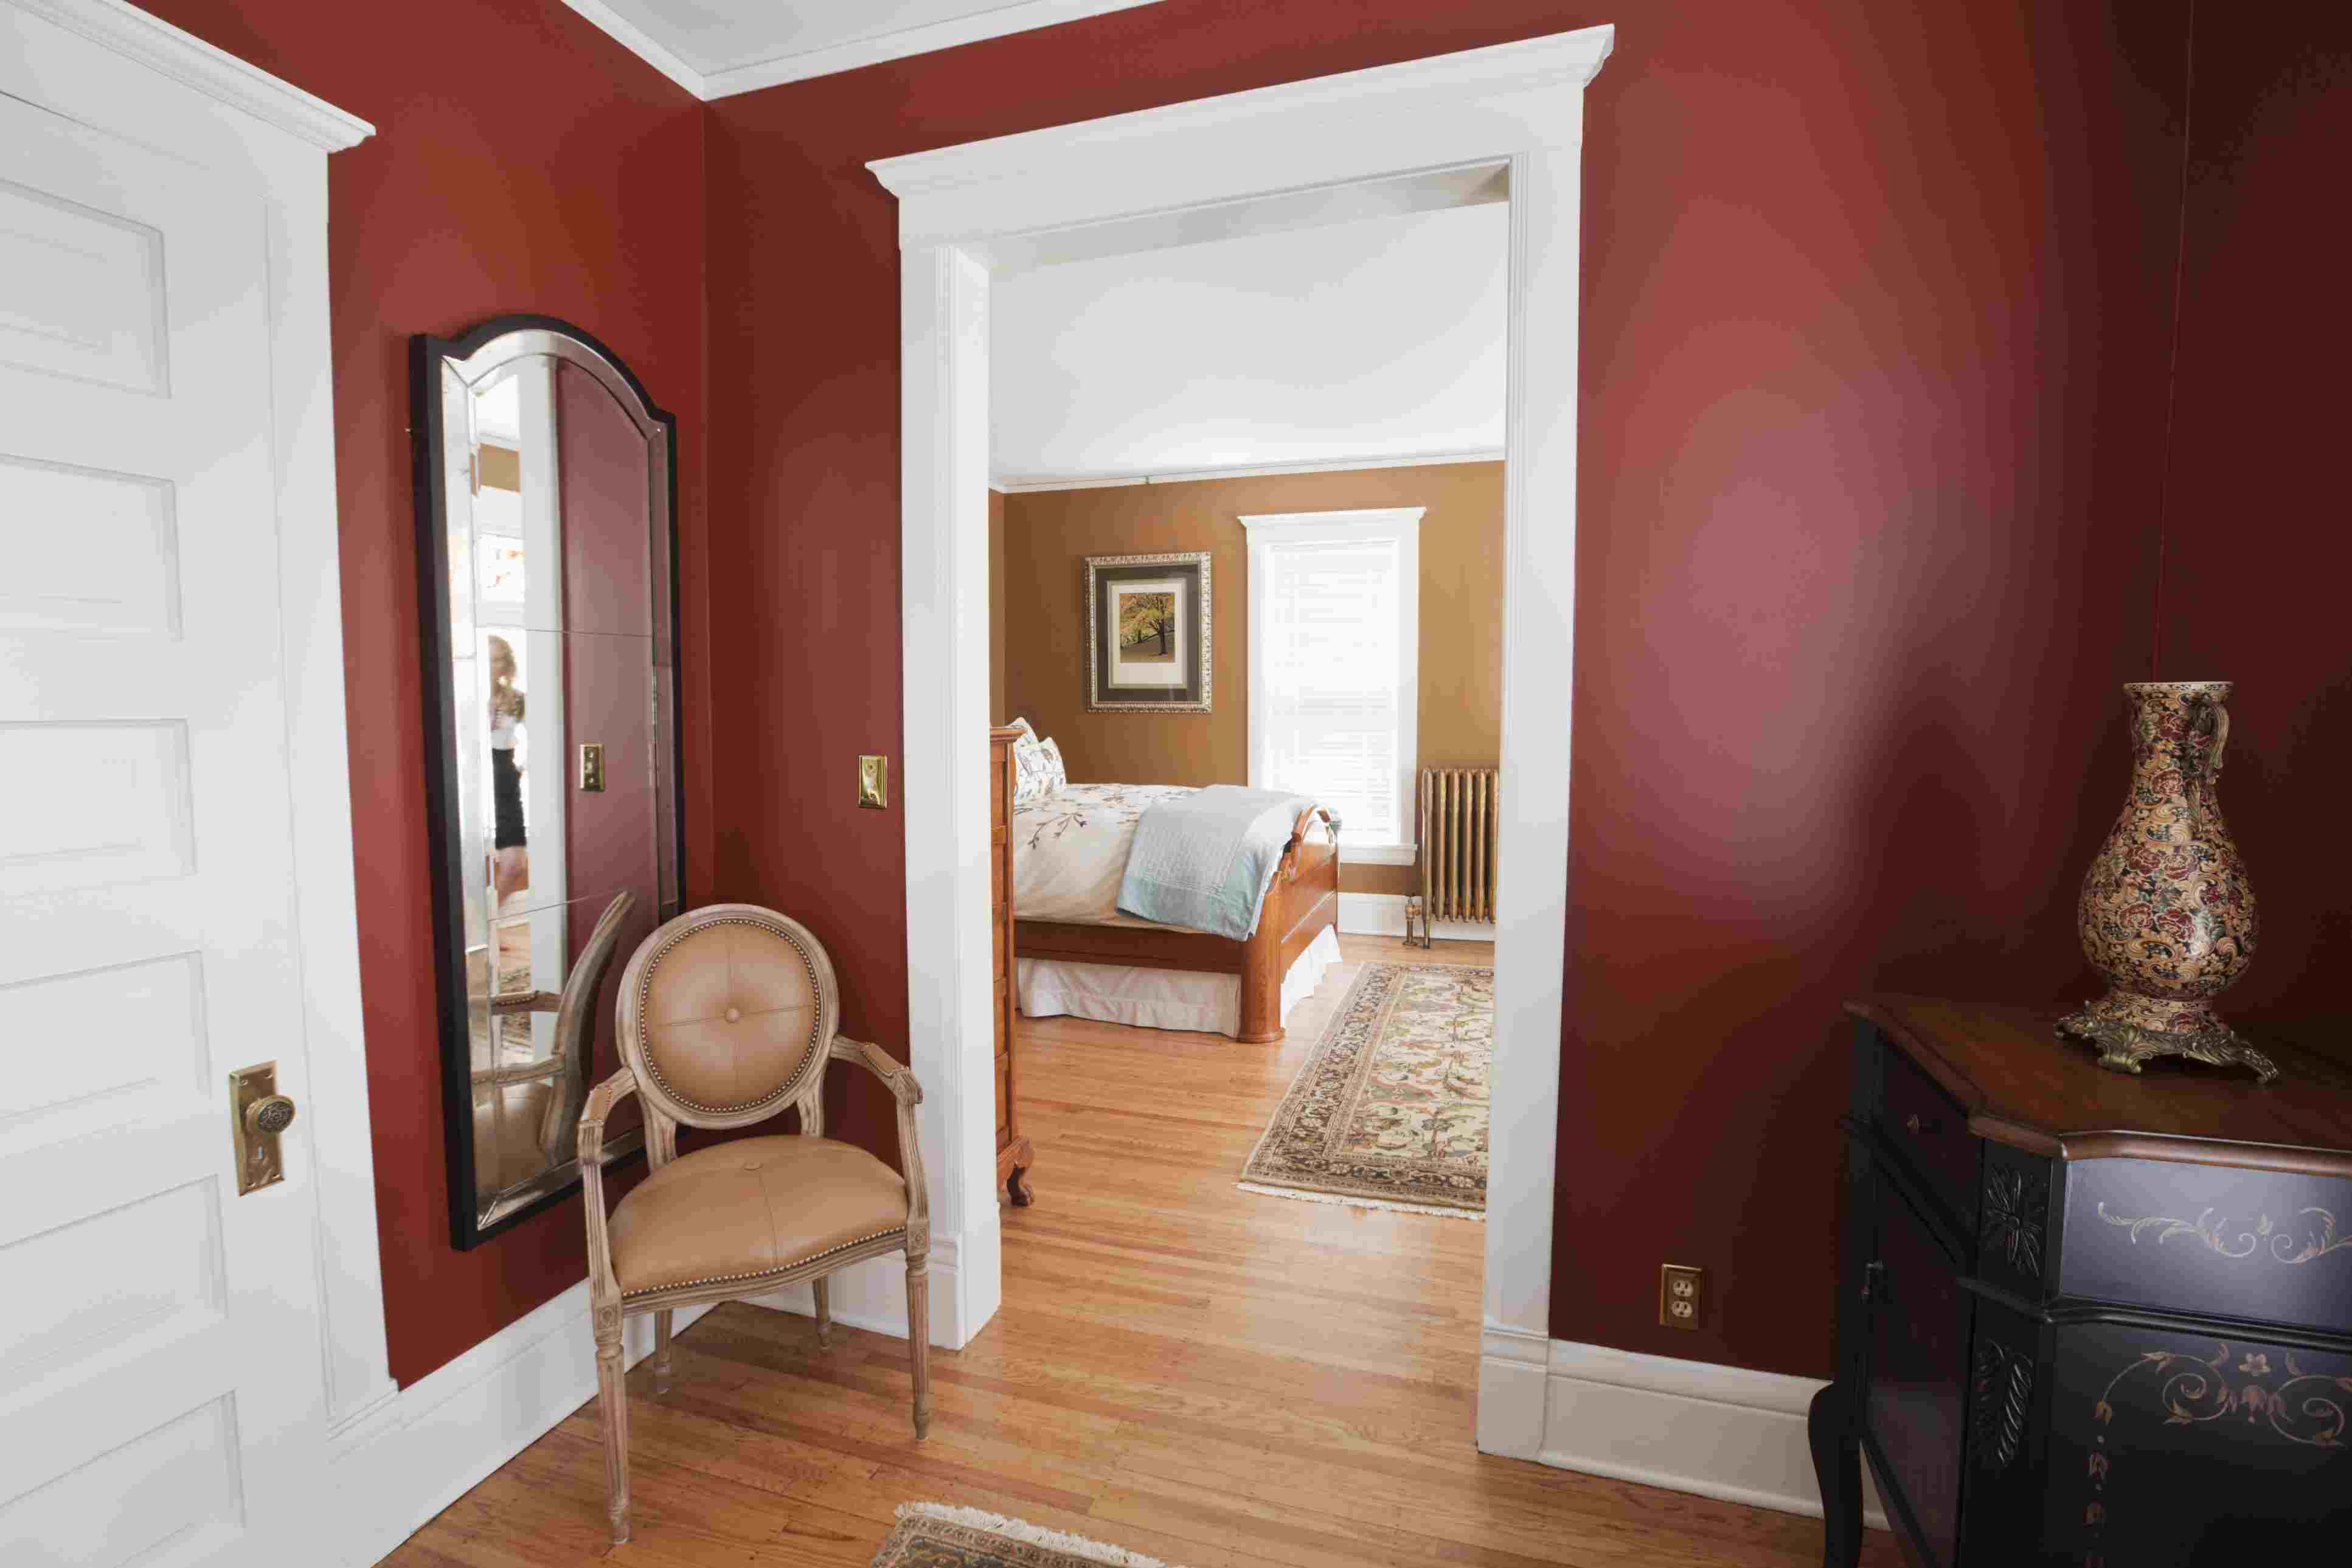 Open doorway leads from smaller room into larger bedroom in Victorian house